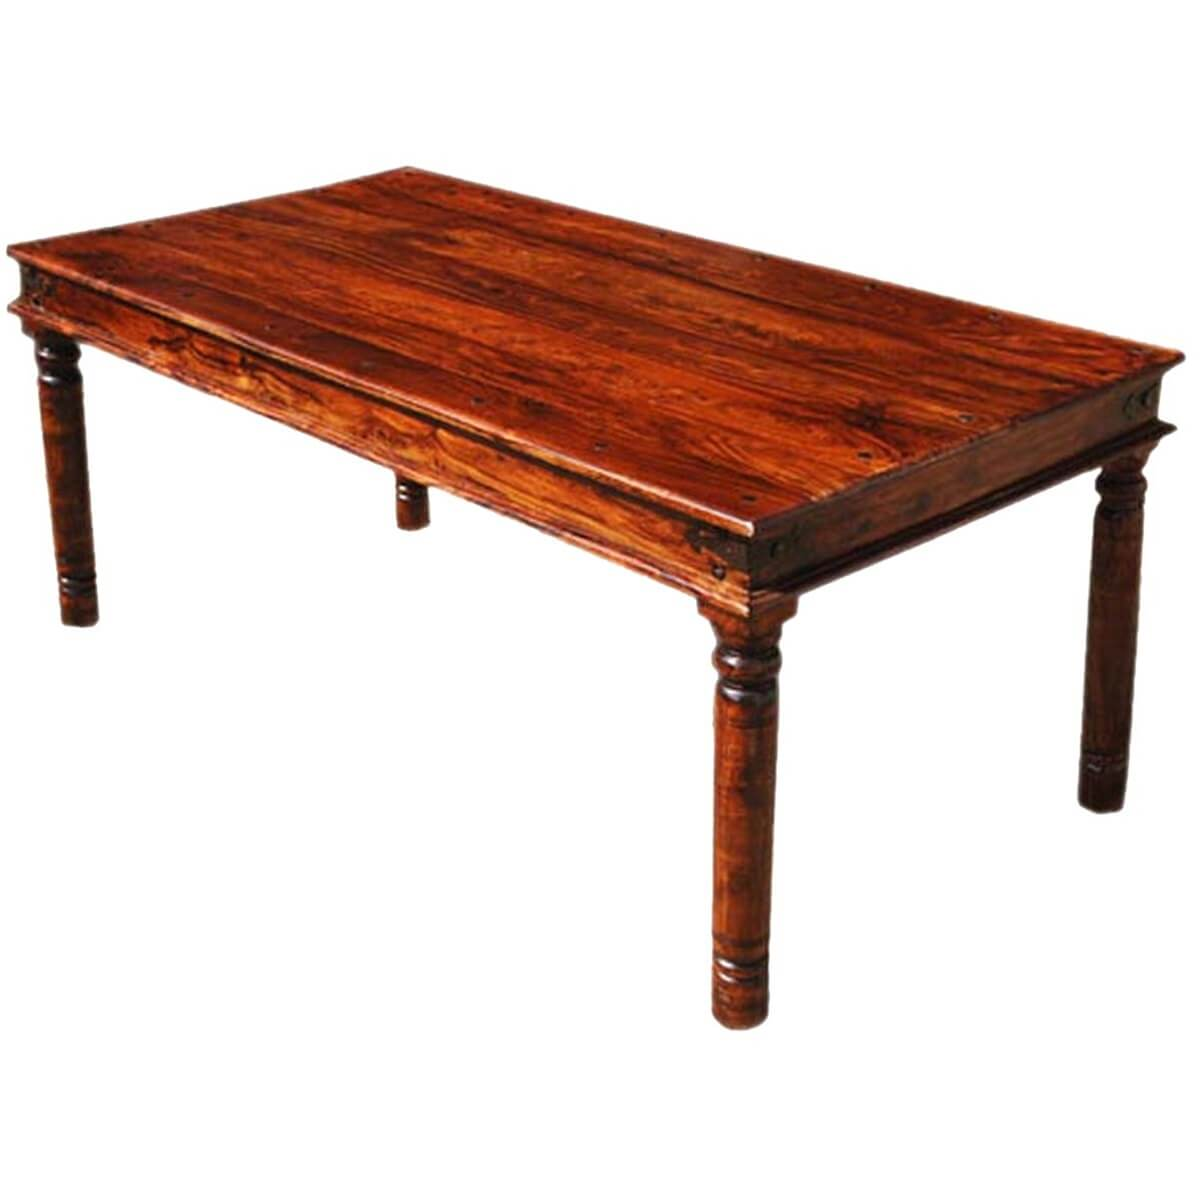 Grogan Rustic Solid Wood Rectangular Dining Table For 8 People. Kitchen Room Wall Tiles. Kitchen Emulsion Paint Colours. Happy Kitchen Decoration Cake Instructions. Kitchen Curtains Farmhouse. Kitchen Makeover Adelaide. Kitchen Glass Splashback Photos. Industrial Kitchen Gas Burners. Kitchen Granite Vs Marble